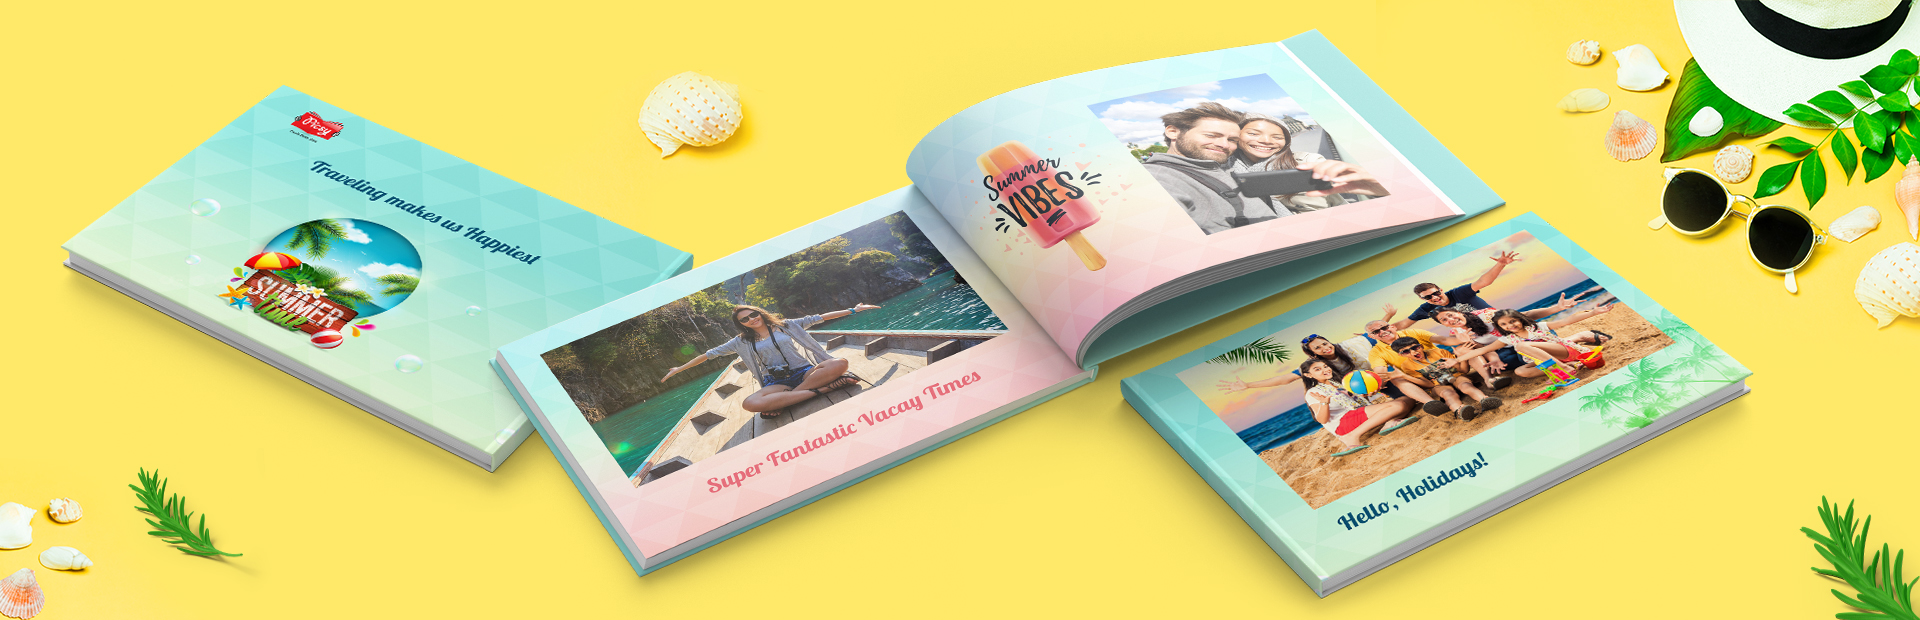 Summer Vacation Photo Books Online